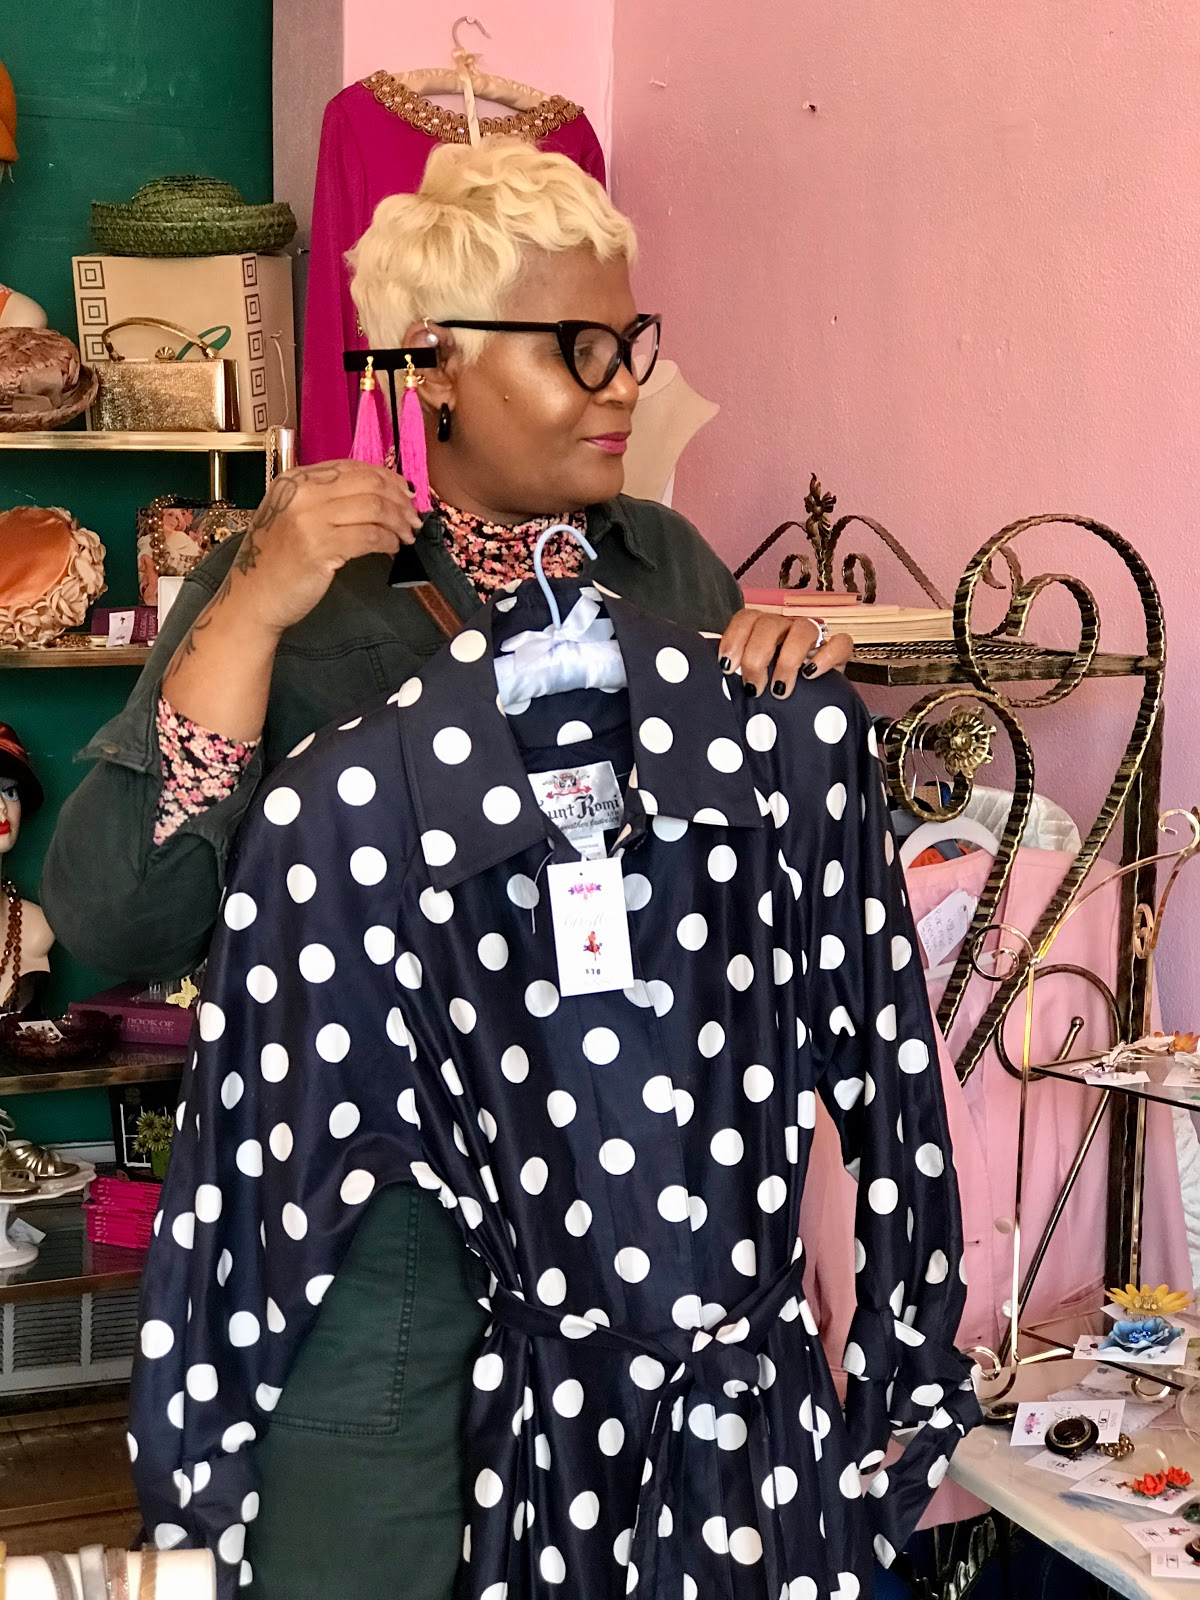 Tangie Bell went thriting and tried on polka dot dresses and pink earrings